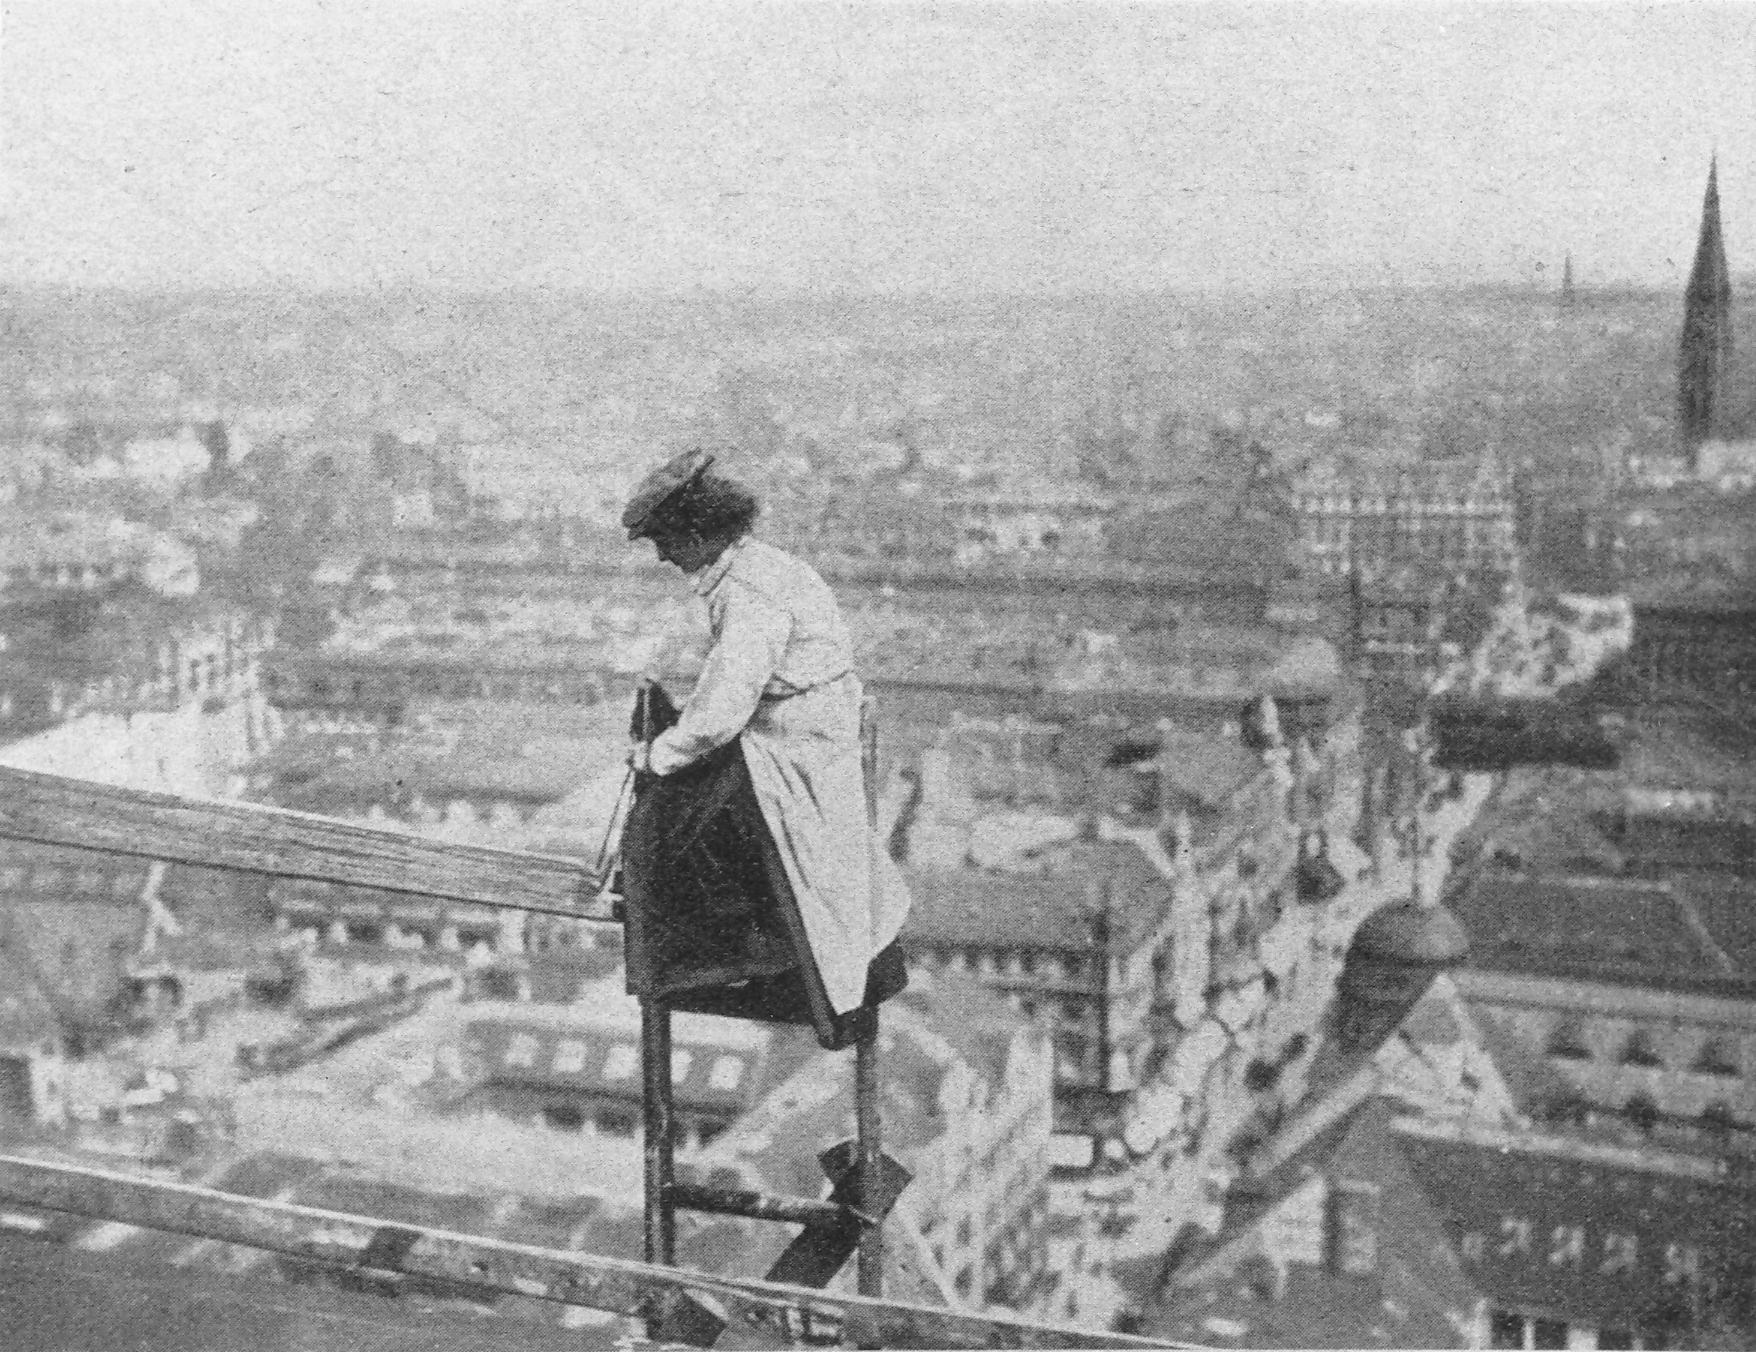 A woman builder making repairs to the roof of Berlin's city hall, 1910.